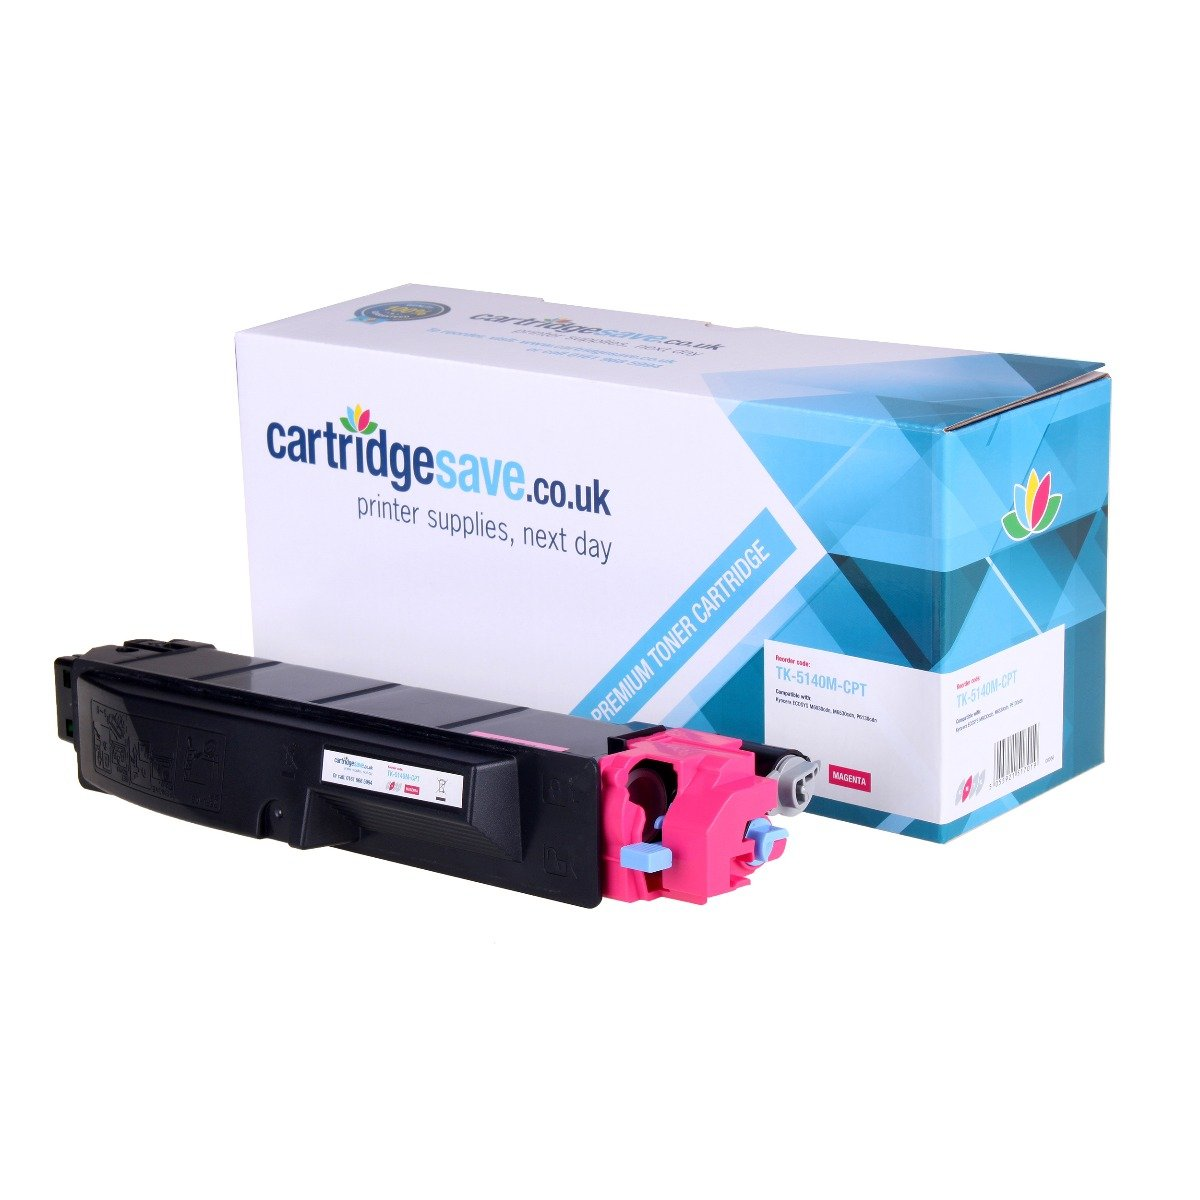 Compatible Magenta Kyocera TK5140M Laser Toner (Replaces Kyocera TK-5140M Laser Printer Cartridge)